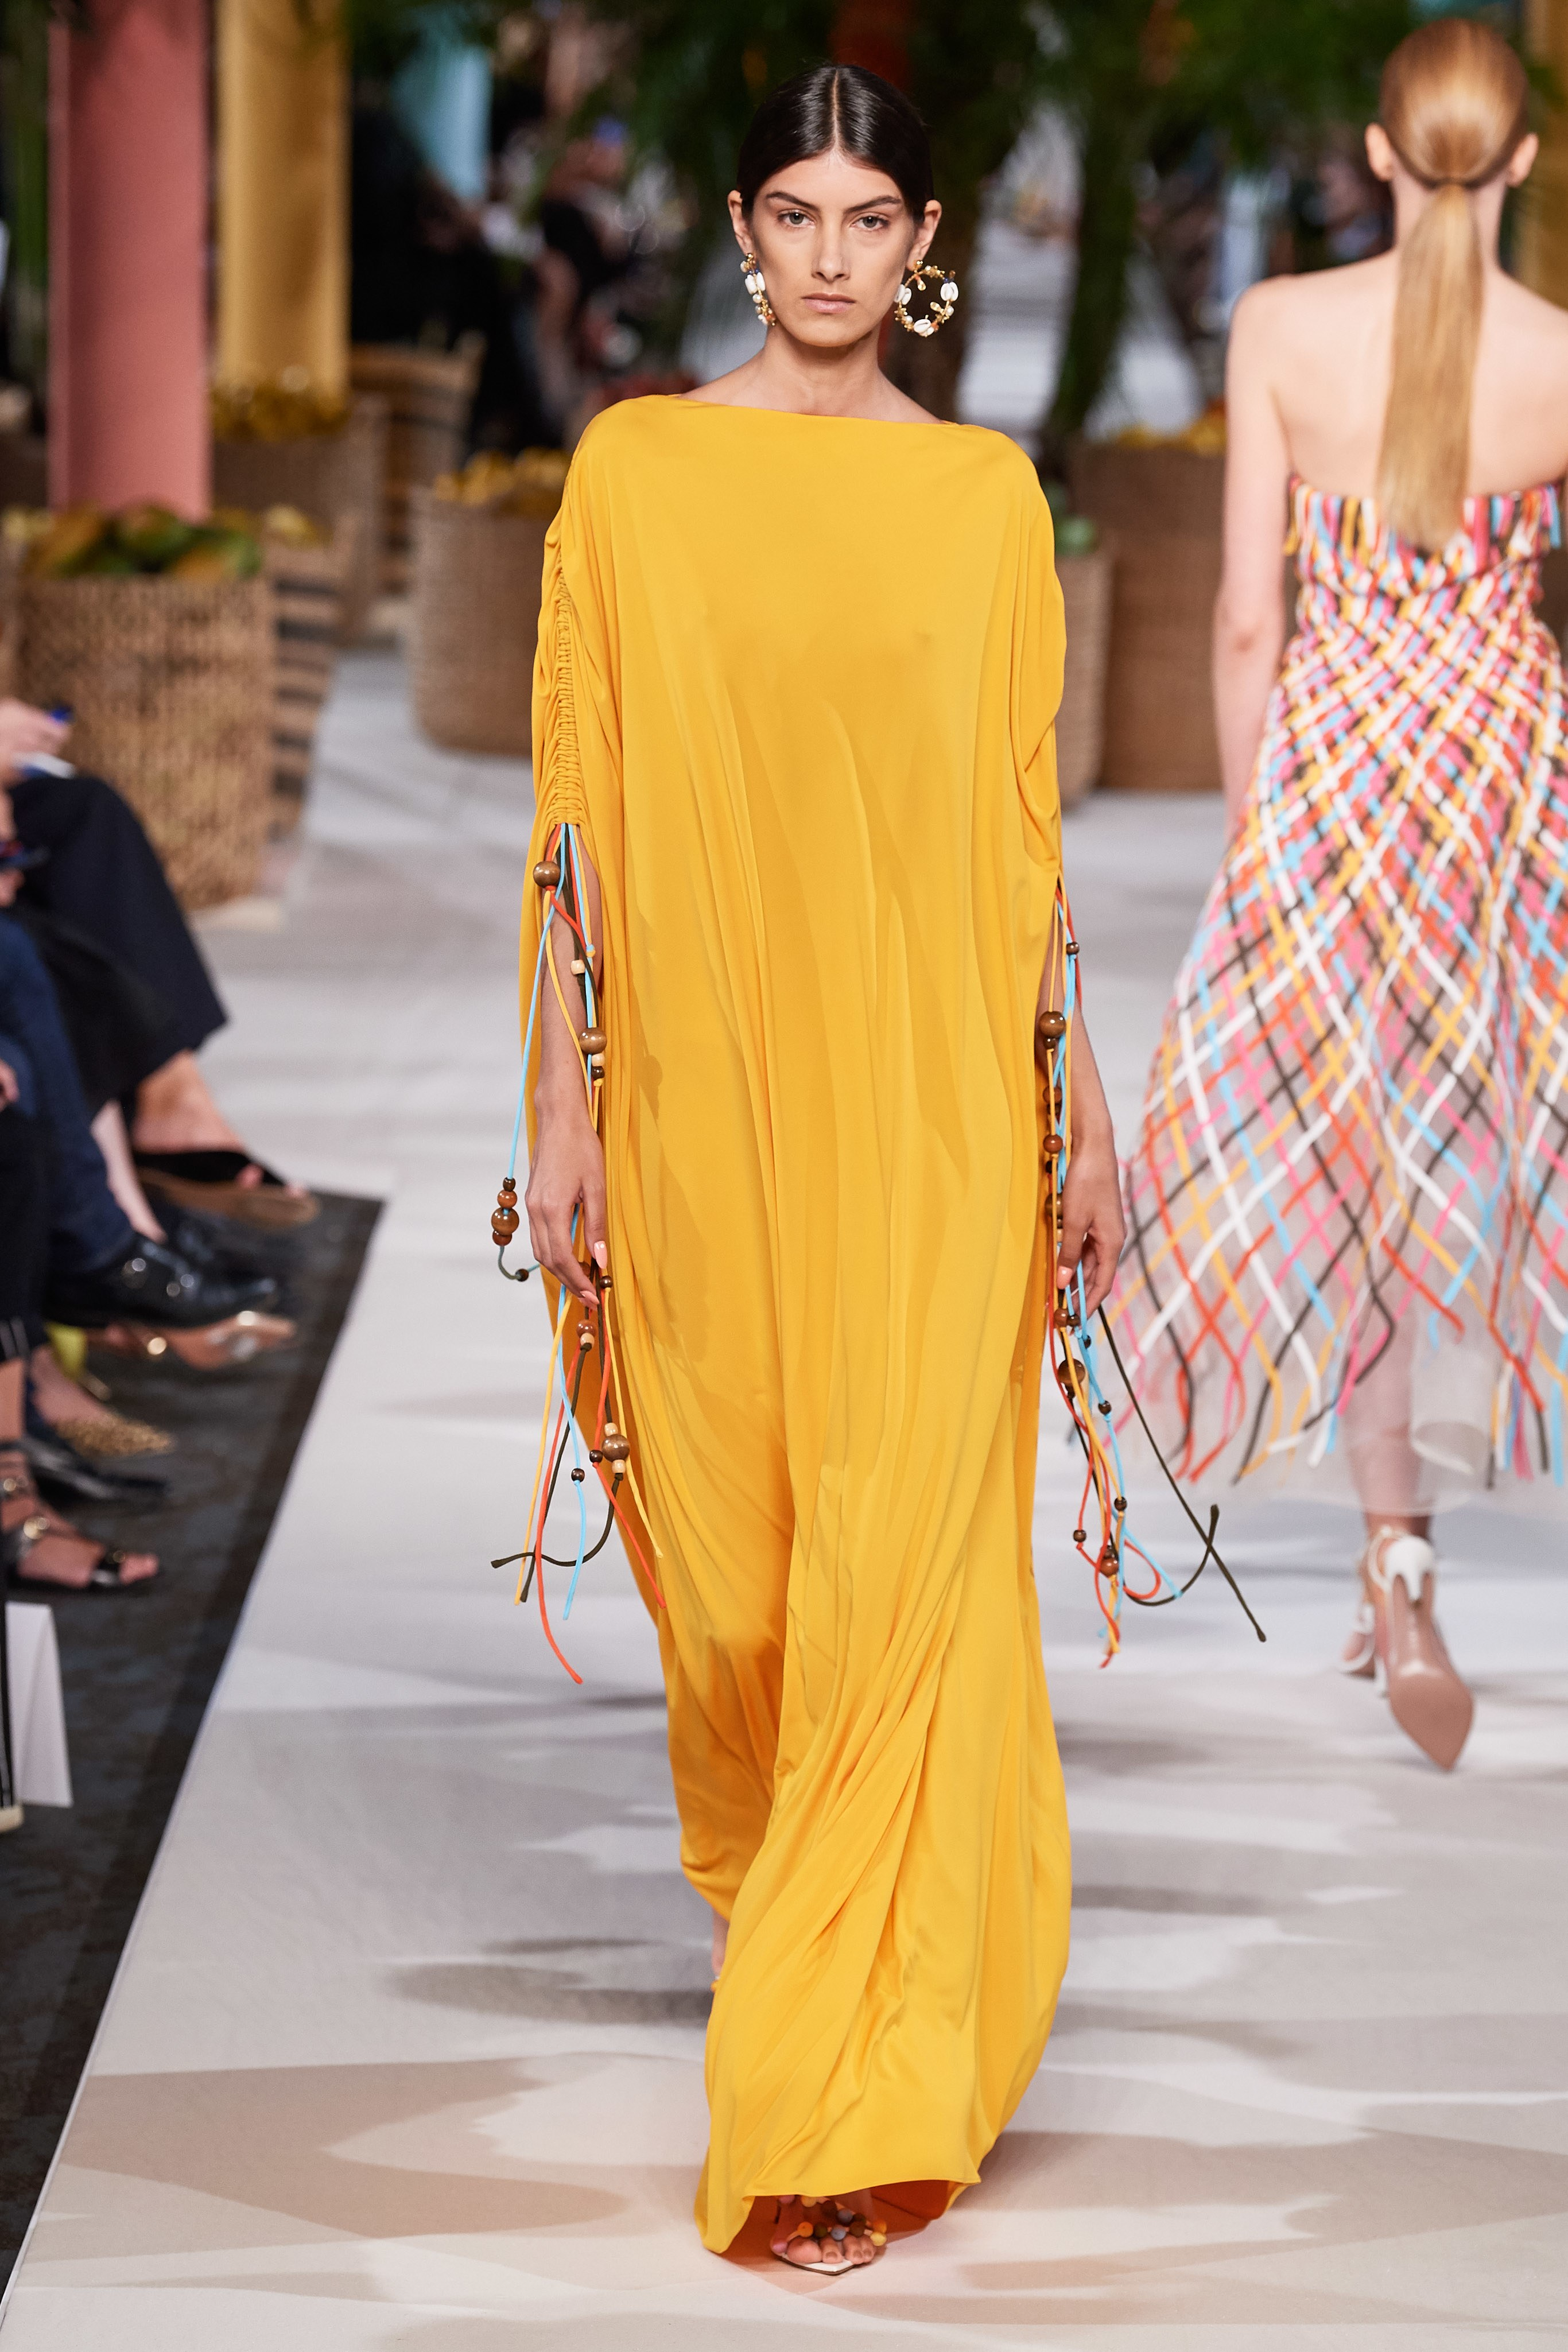 Oscar de la renta Spring Summer 2020 SS2020 trends runway coverage Ready To Wear Vogue yellow monochrome